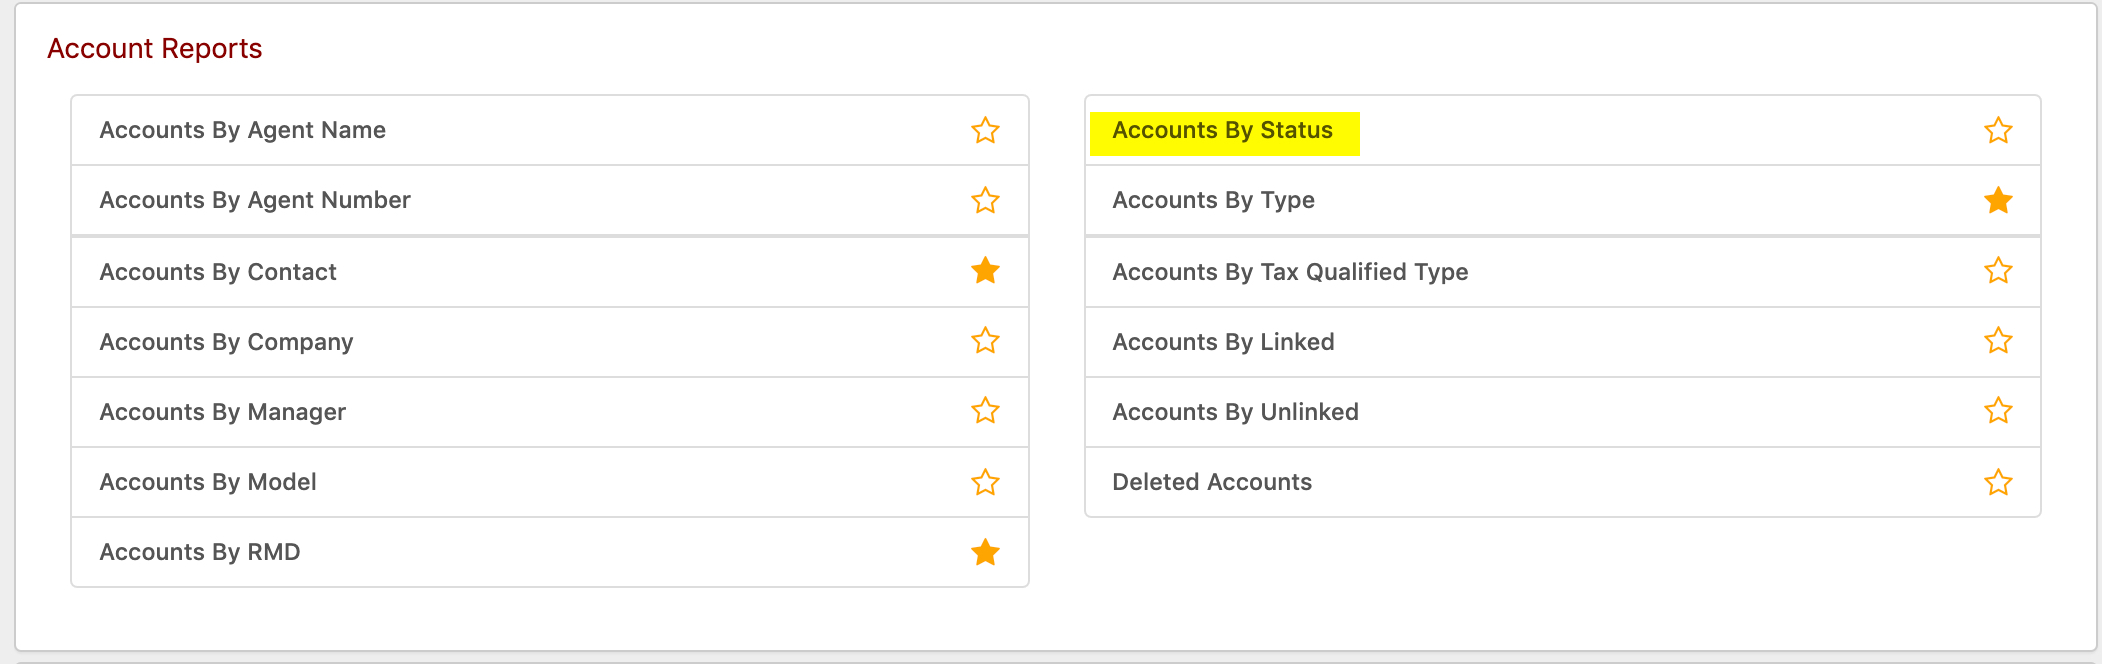 accounts_by_status_report.jpg